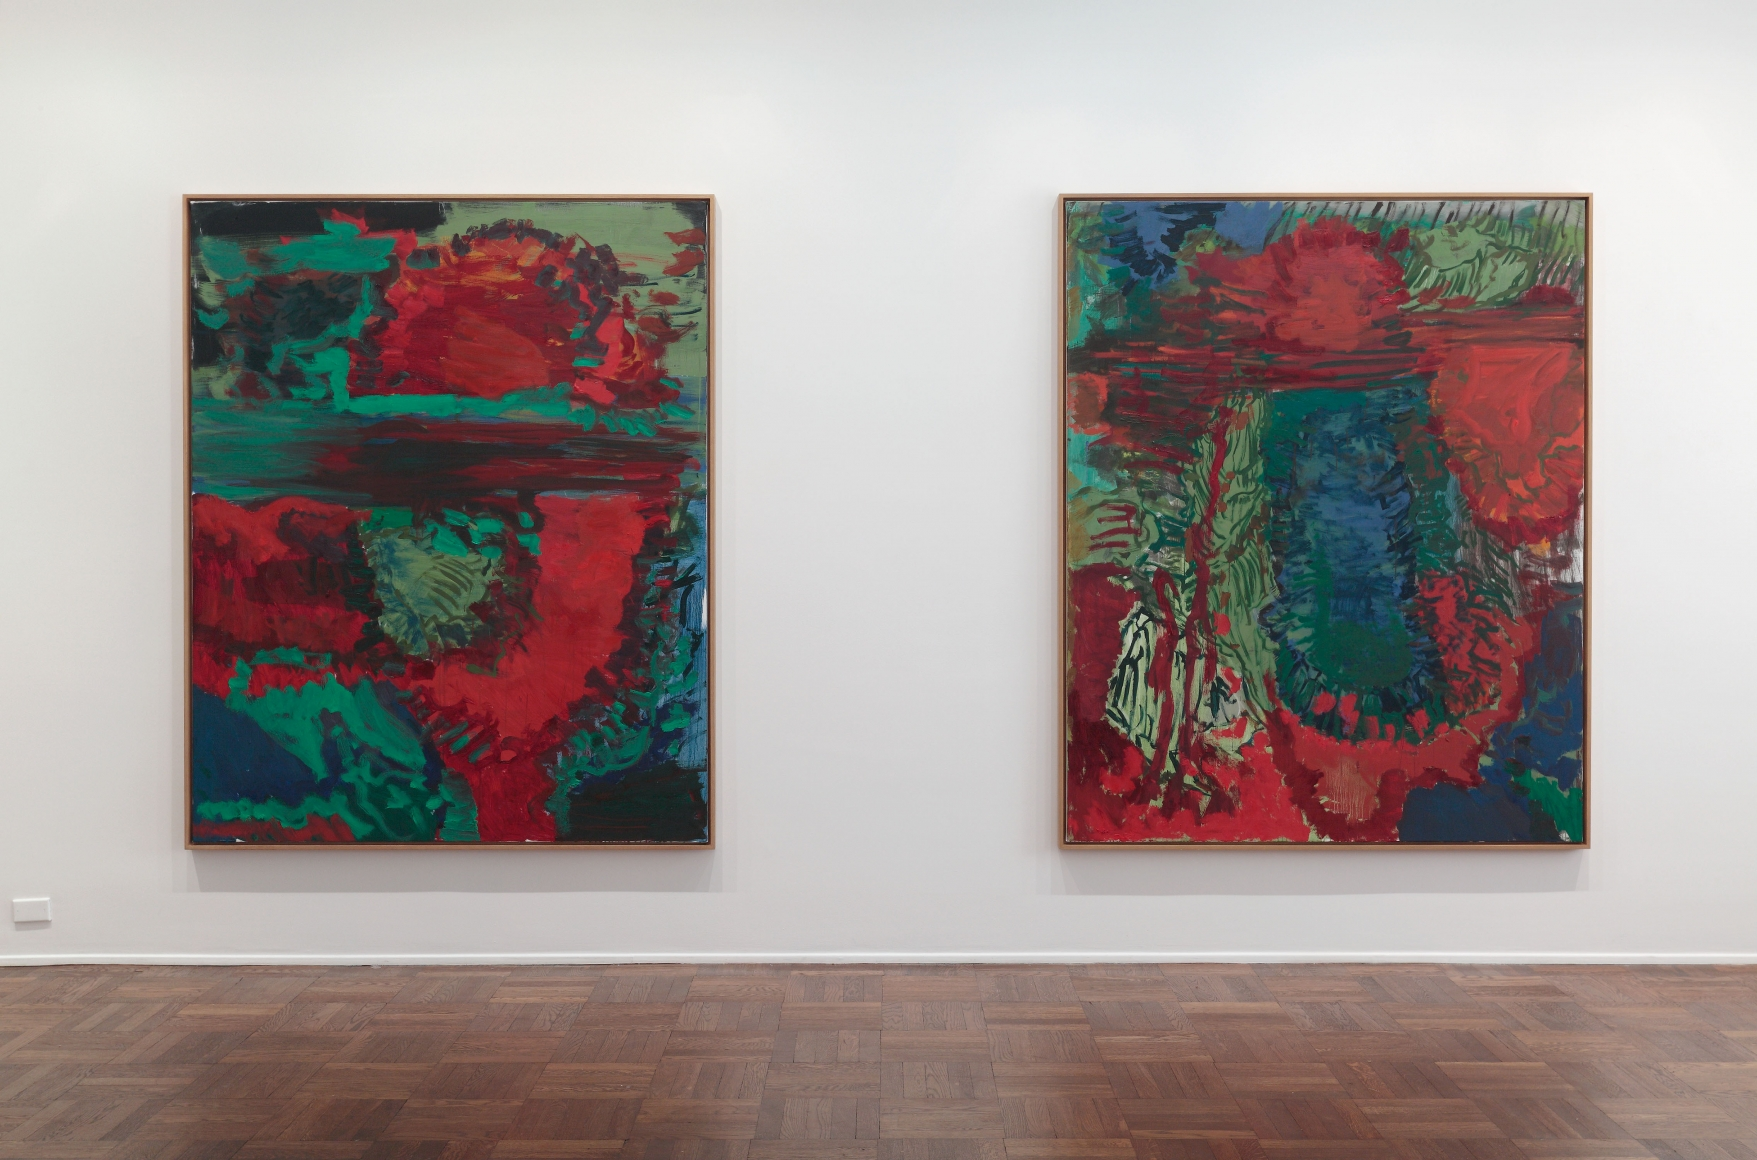 Per Kirkeby, New Paintings, New York, 2011, Installation Image 8